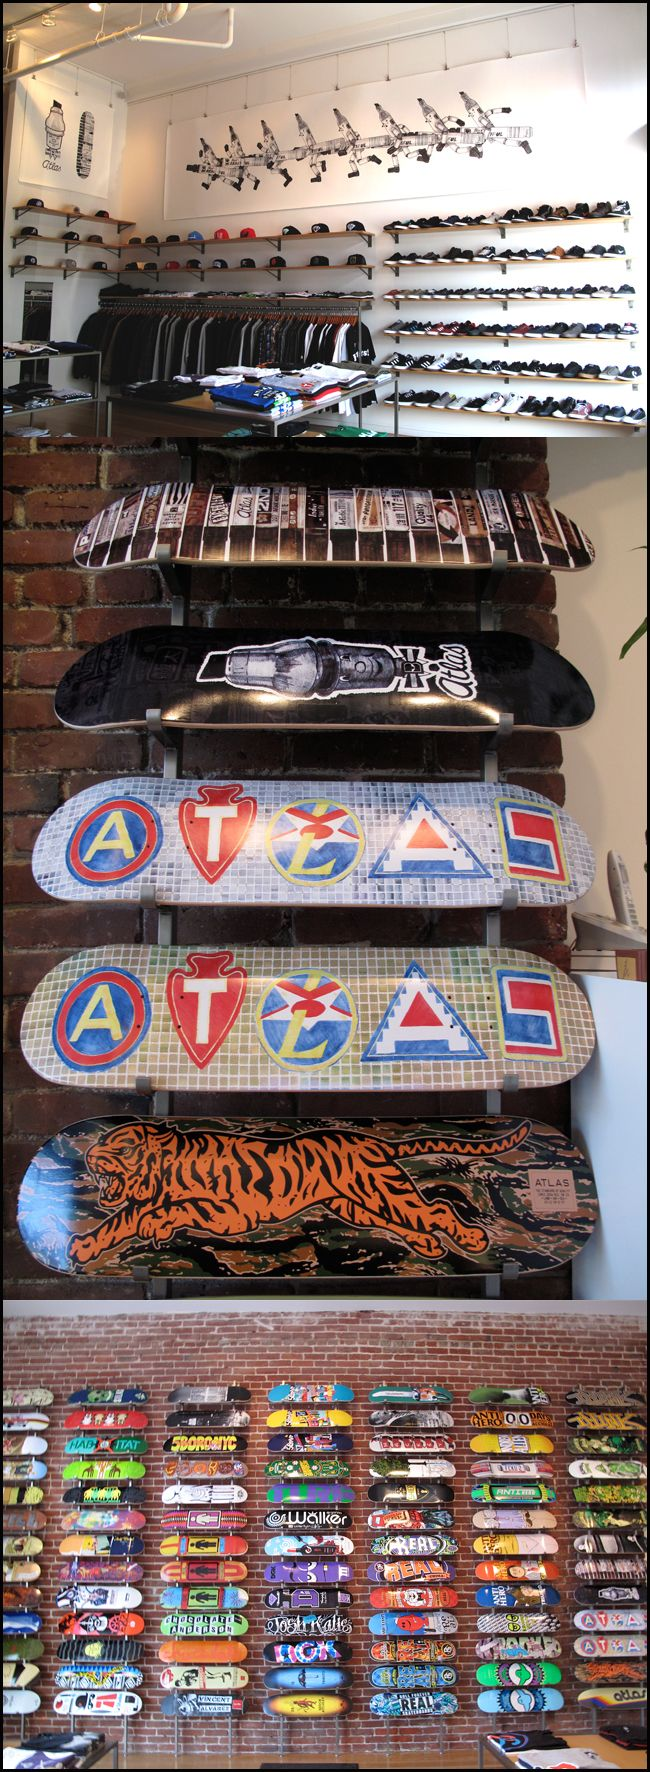 I have seen many skate shop like this one that use plain brick walls for displays, In my opinion i think its really cool and urban because it links to the streets, where skaters would ride before there was any skateparks.